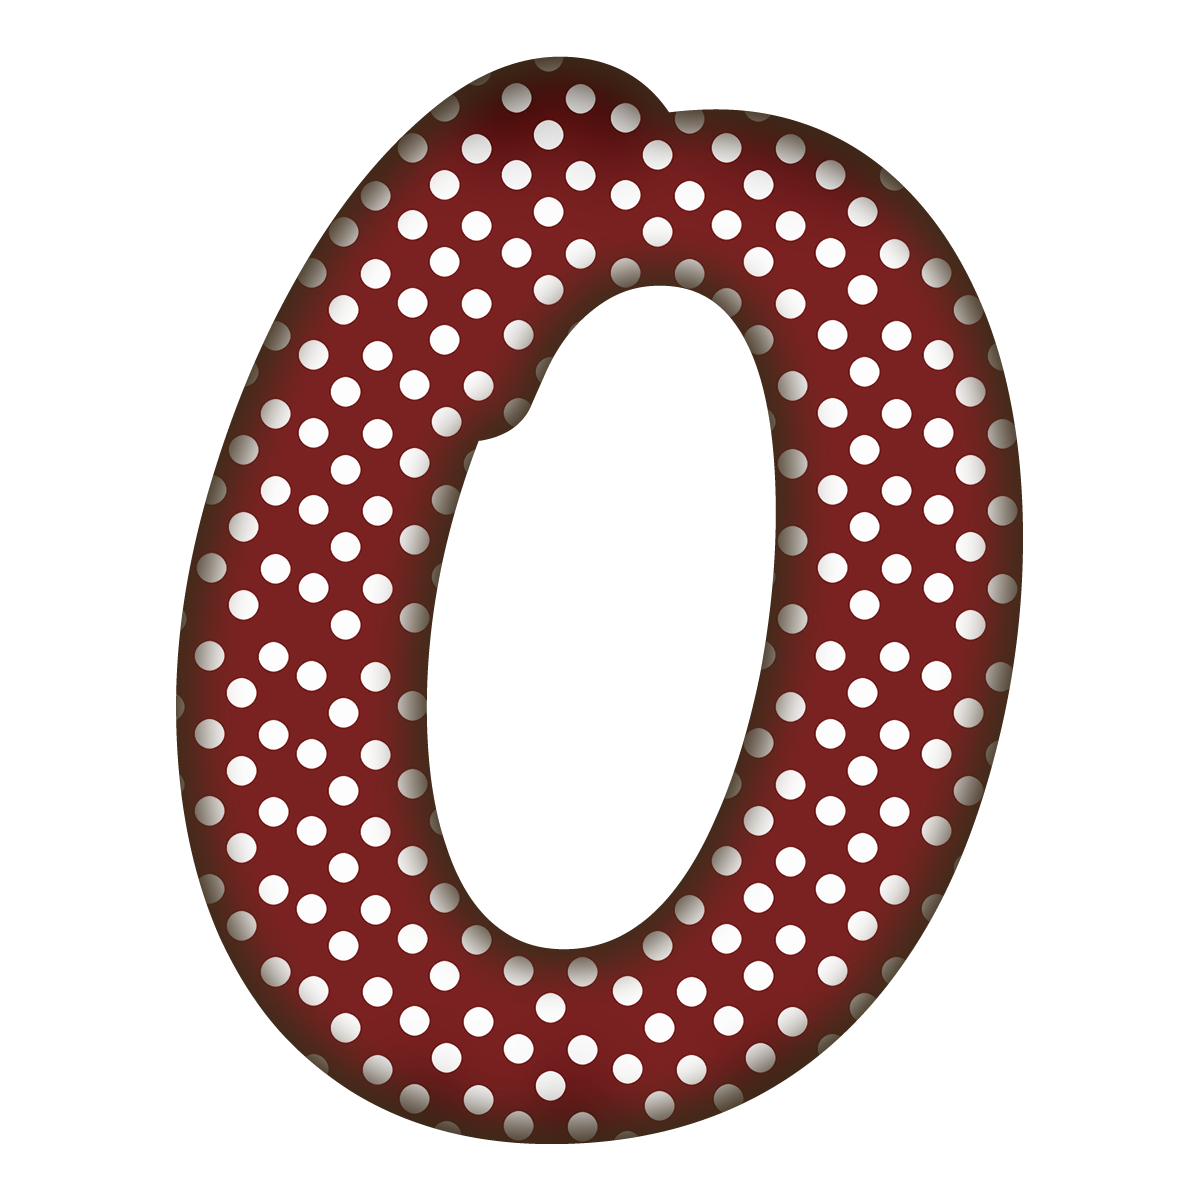 Letter O PNG - 64746